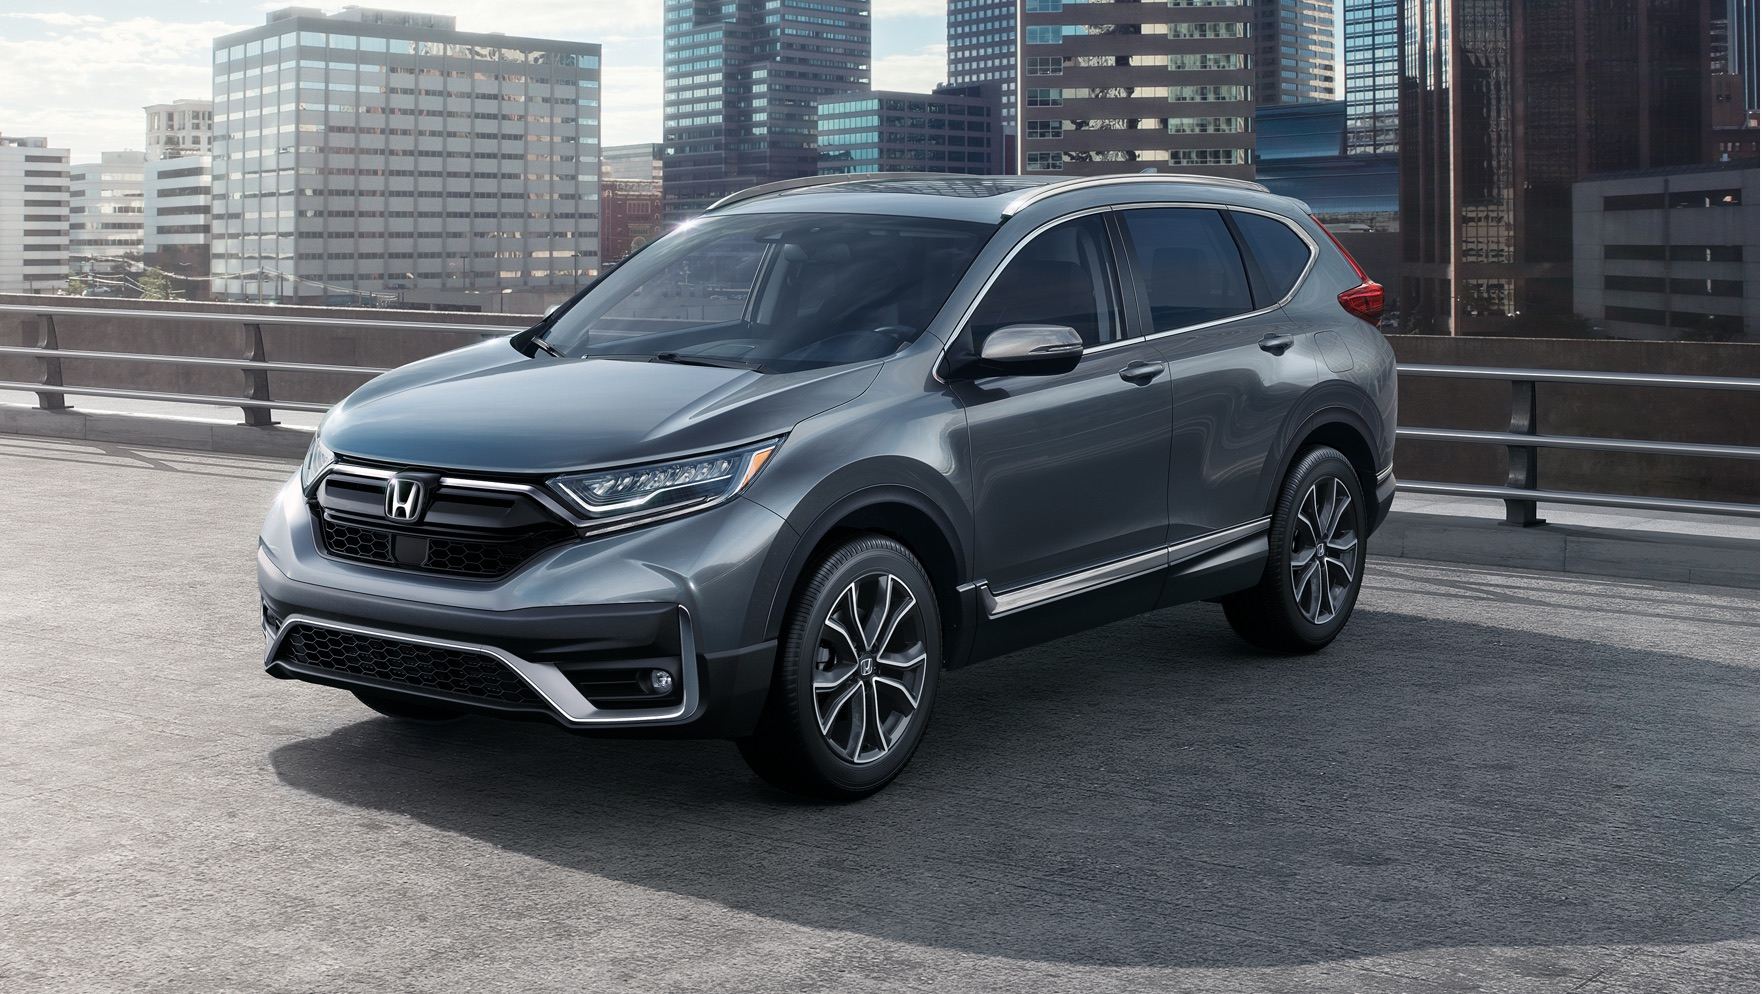 Front driver-side view of the 2020 Honda CR-V in Modern Steel Metallic against a city background.